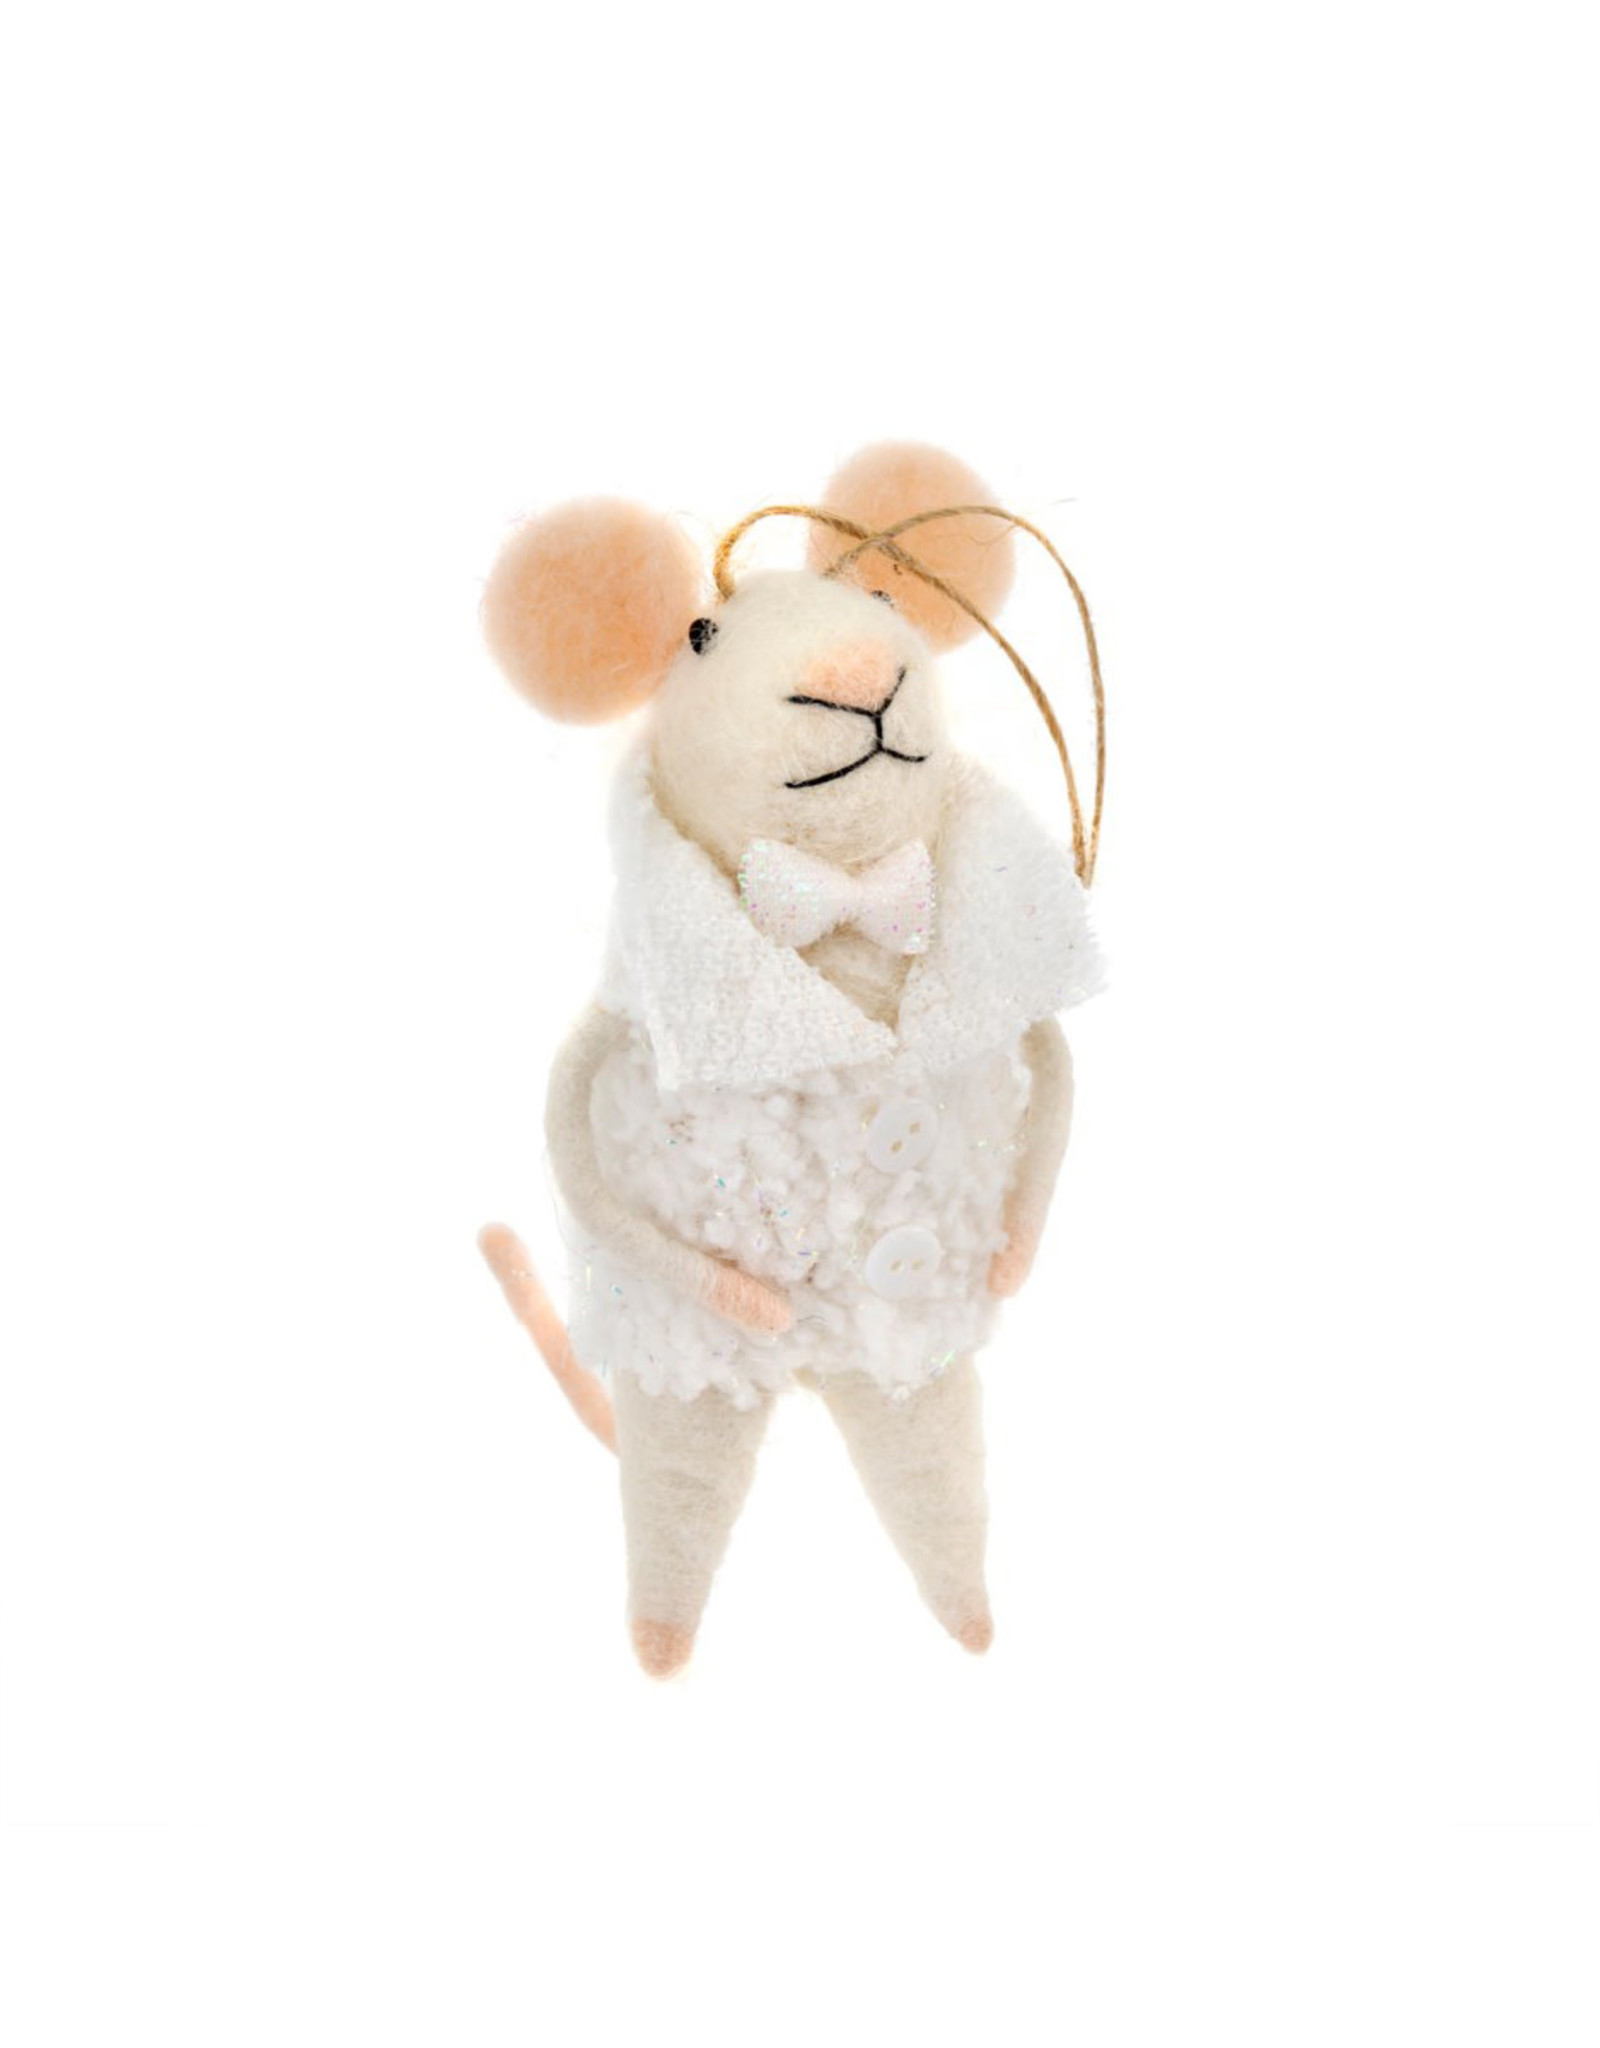 Indaba New Year's Evan Mouse Ornament